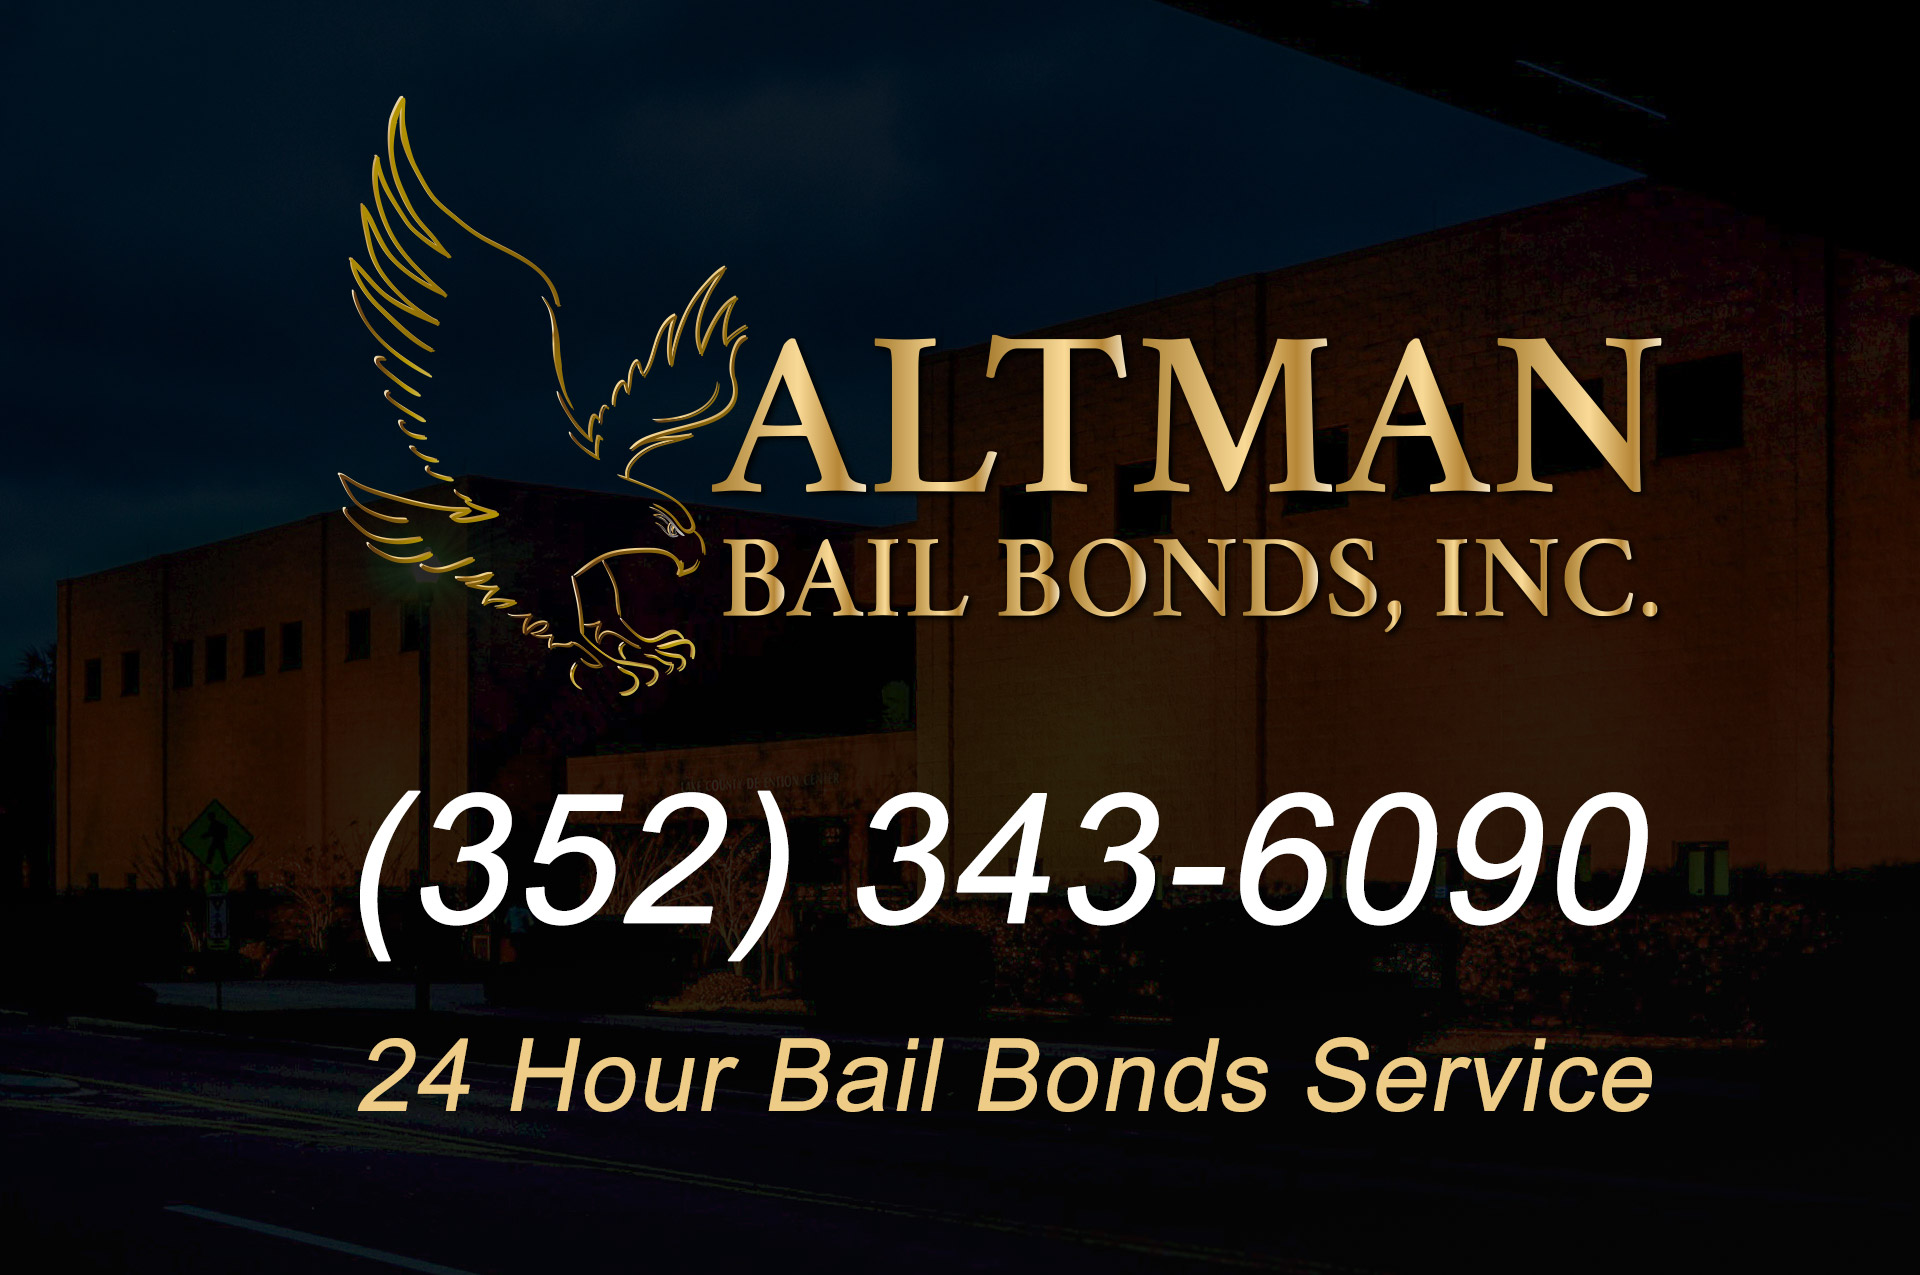 Altman Bail Bonds, Inc.